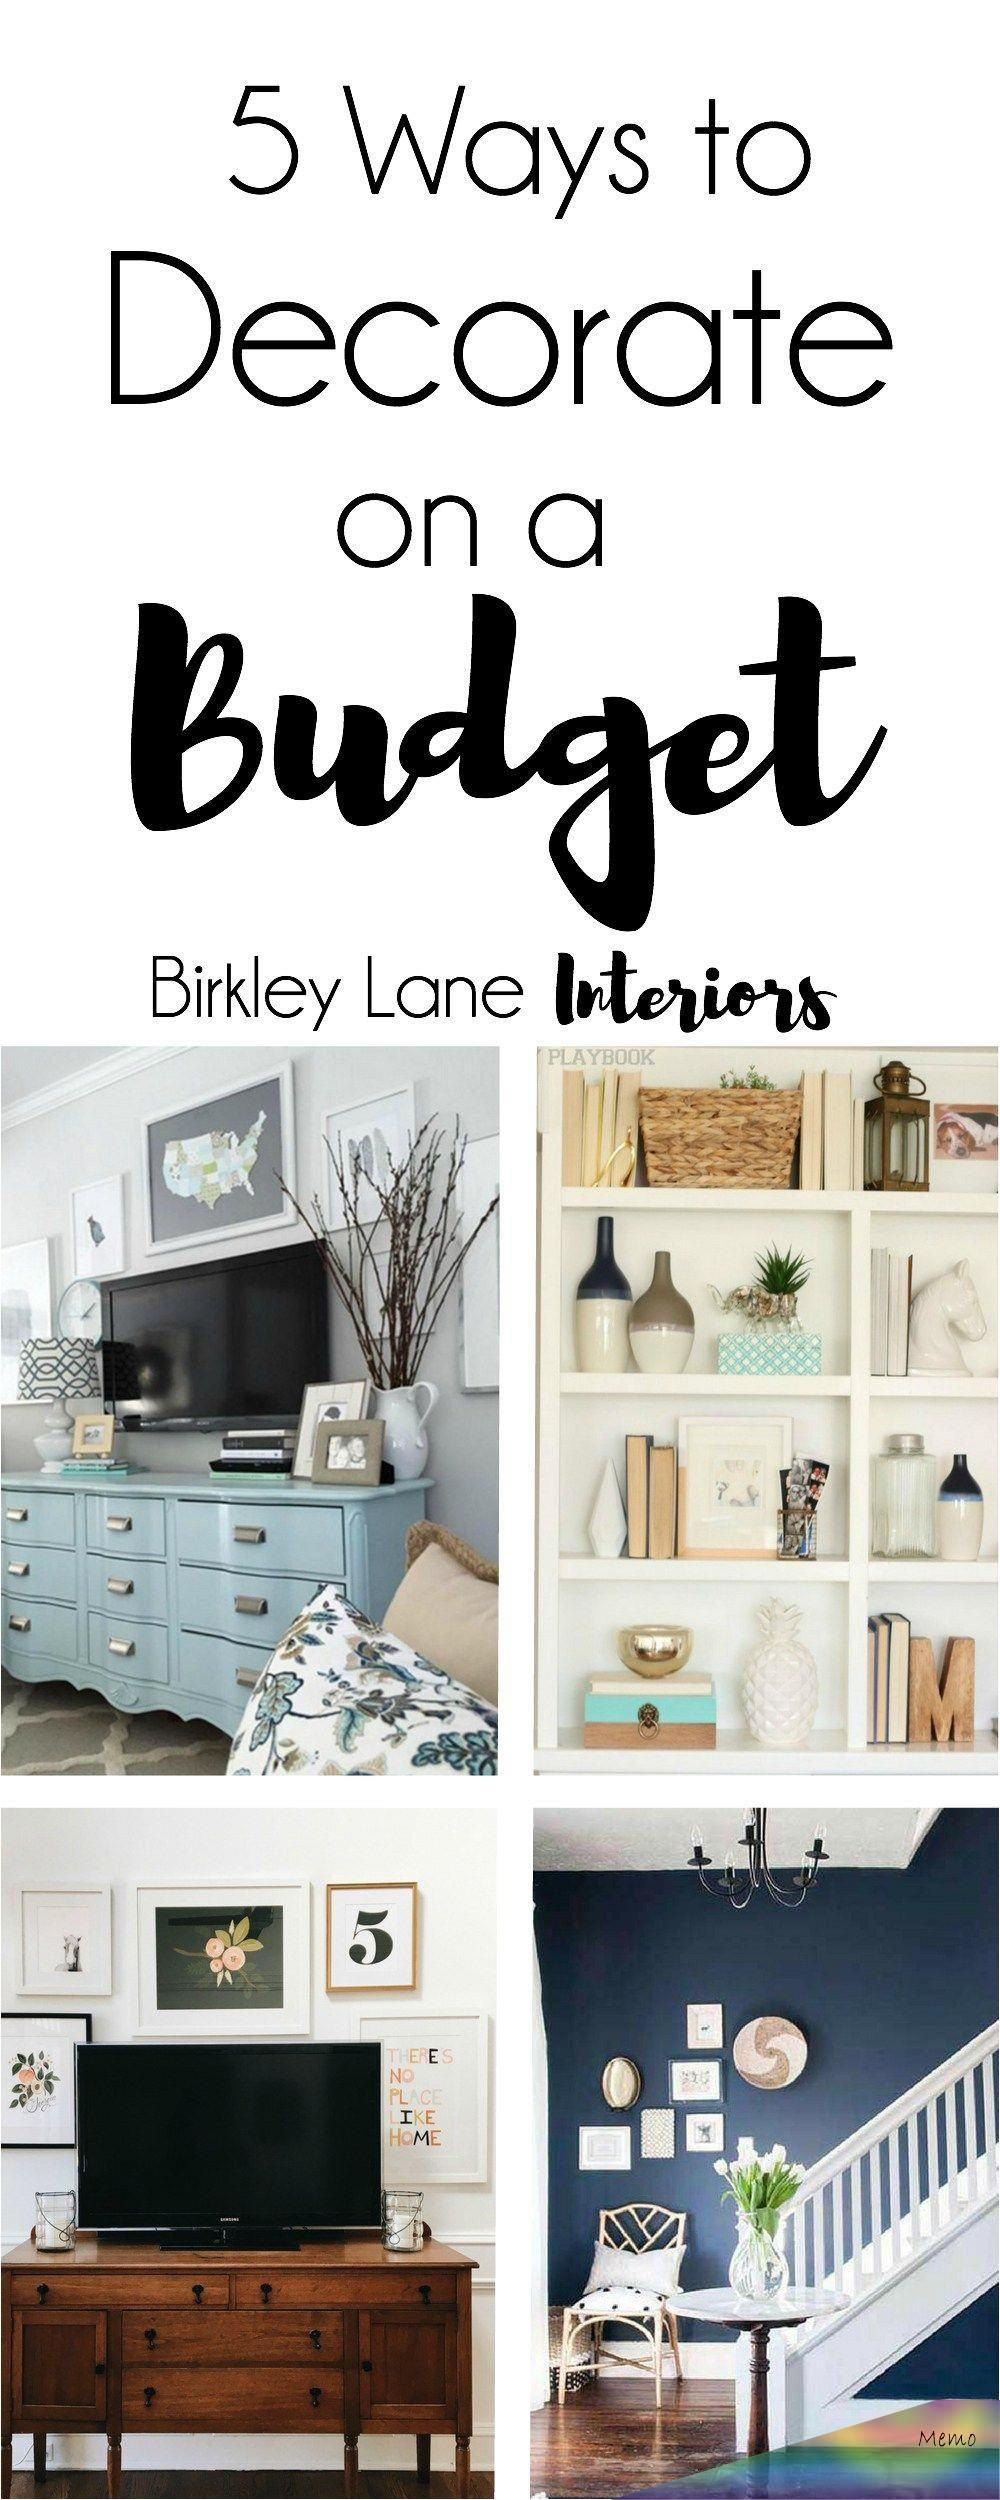 Mar 30, 2017 - Check out my 5 hacks to decorate your home on a budget! These ideas will help you decorate cheap but look fabulous! Plus, find affordable decor. #decorateonabudget #decoratingtips #homedecor